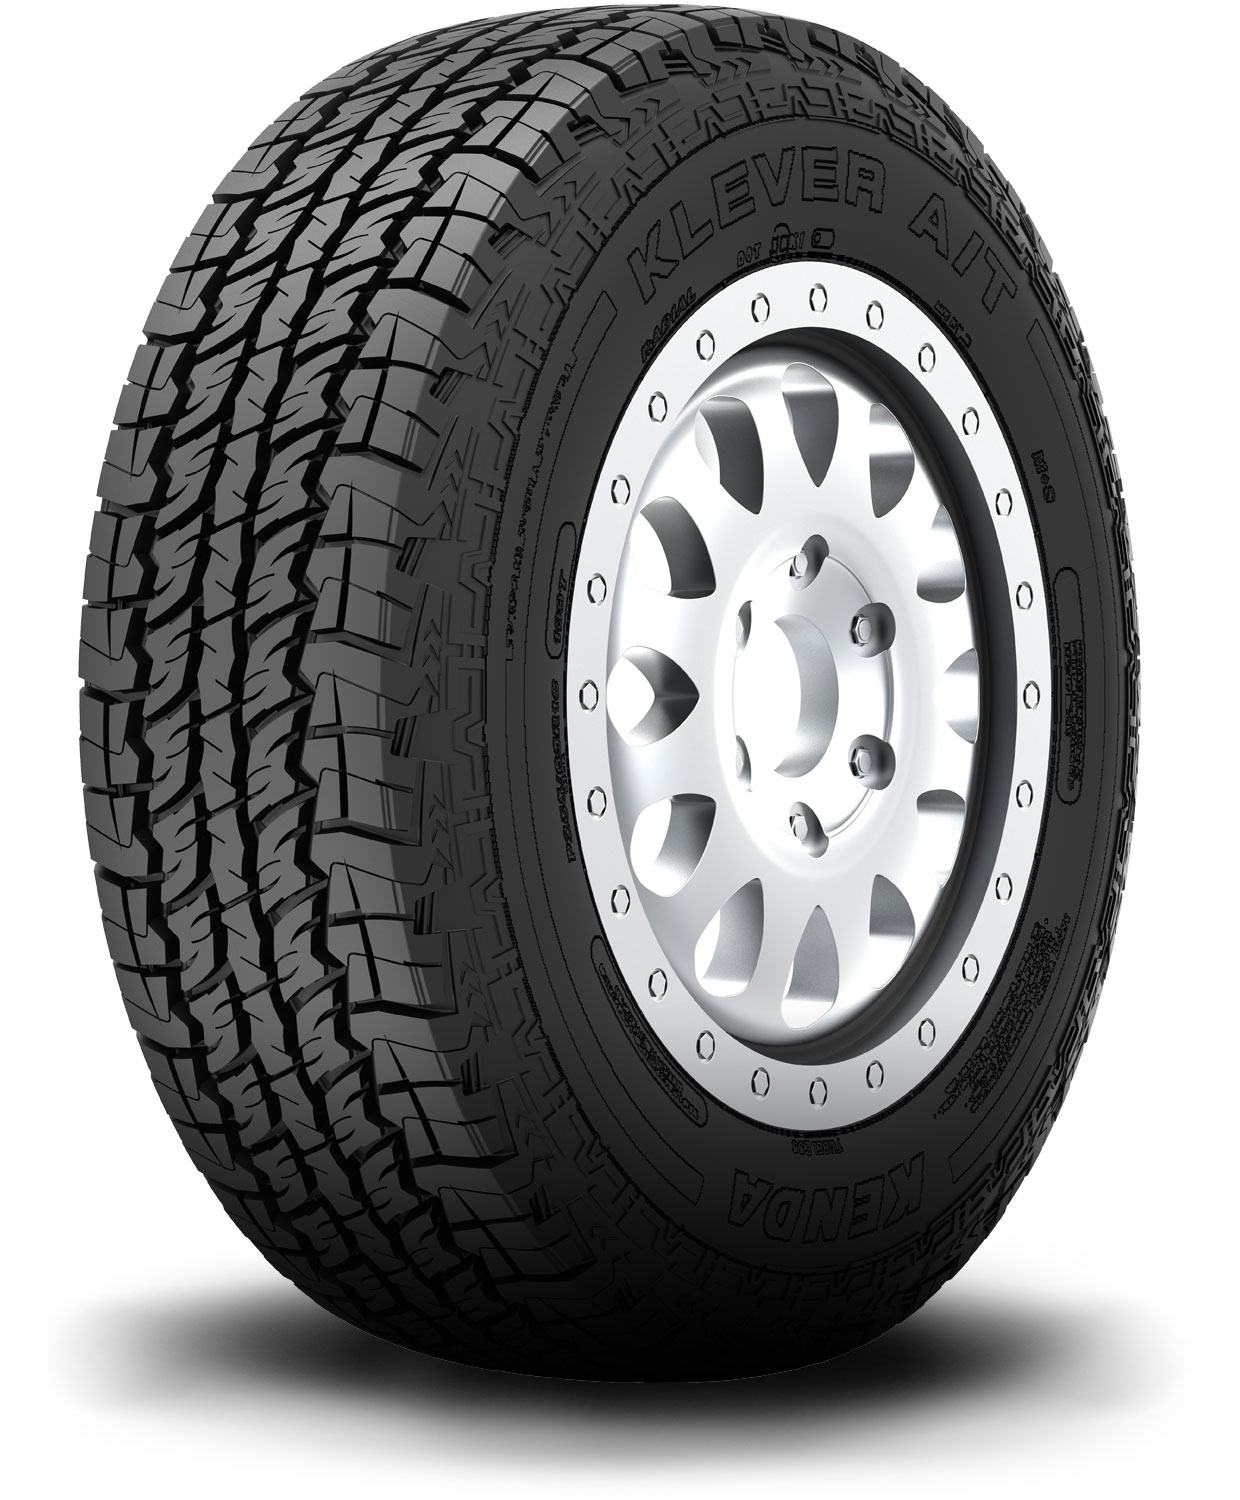 Llantas 245/75 R17  KLEVER AT KR28 KENDA Origen china